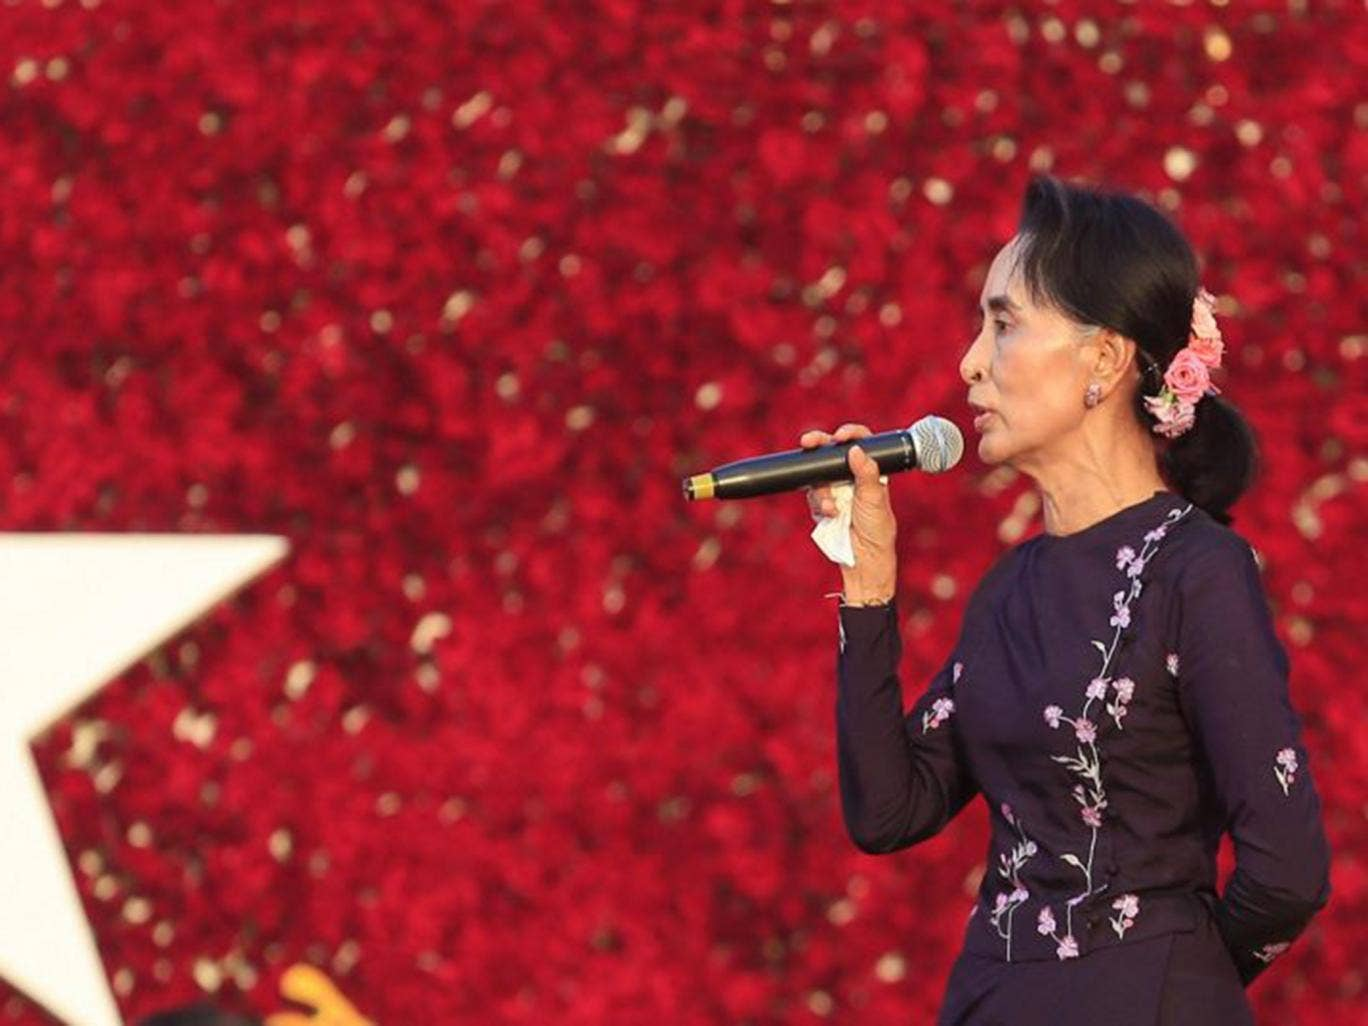 aung san suu kyi short essay myanmar who is htin kyaw burma s new est some photos aung san suu kyi the national league for democracy nld led by myanmar